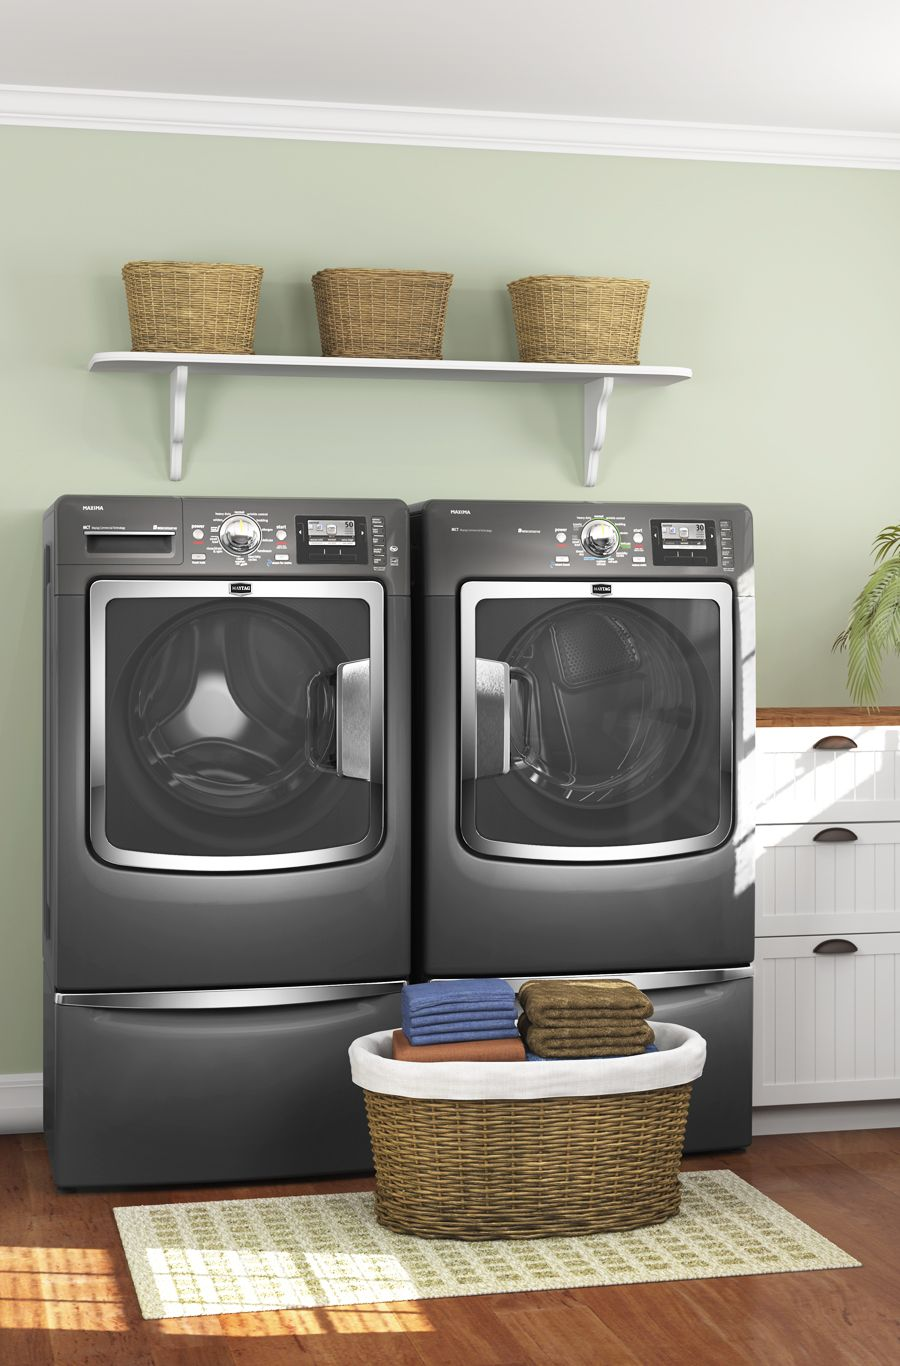 May is Maytag month at Abt, and your chance to save big on